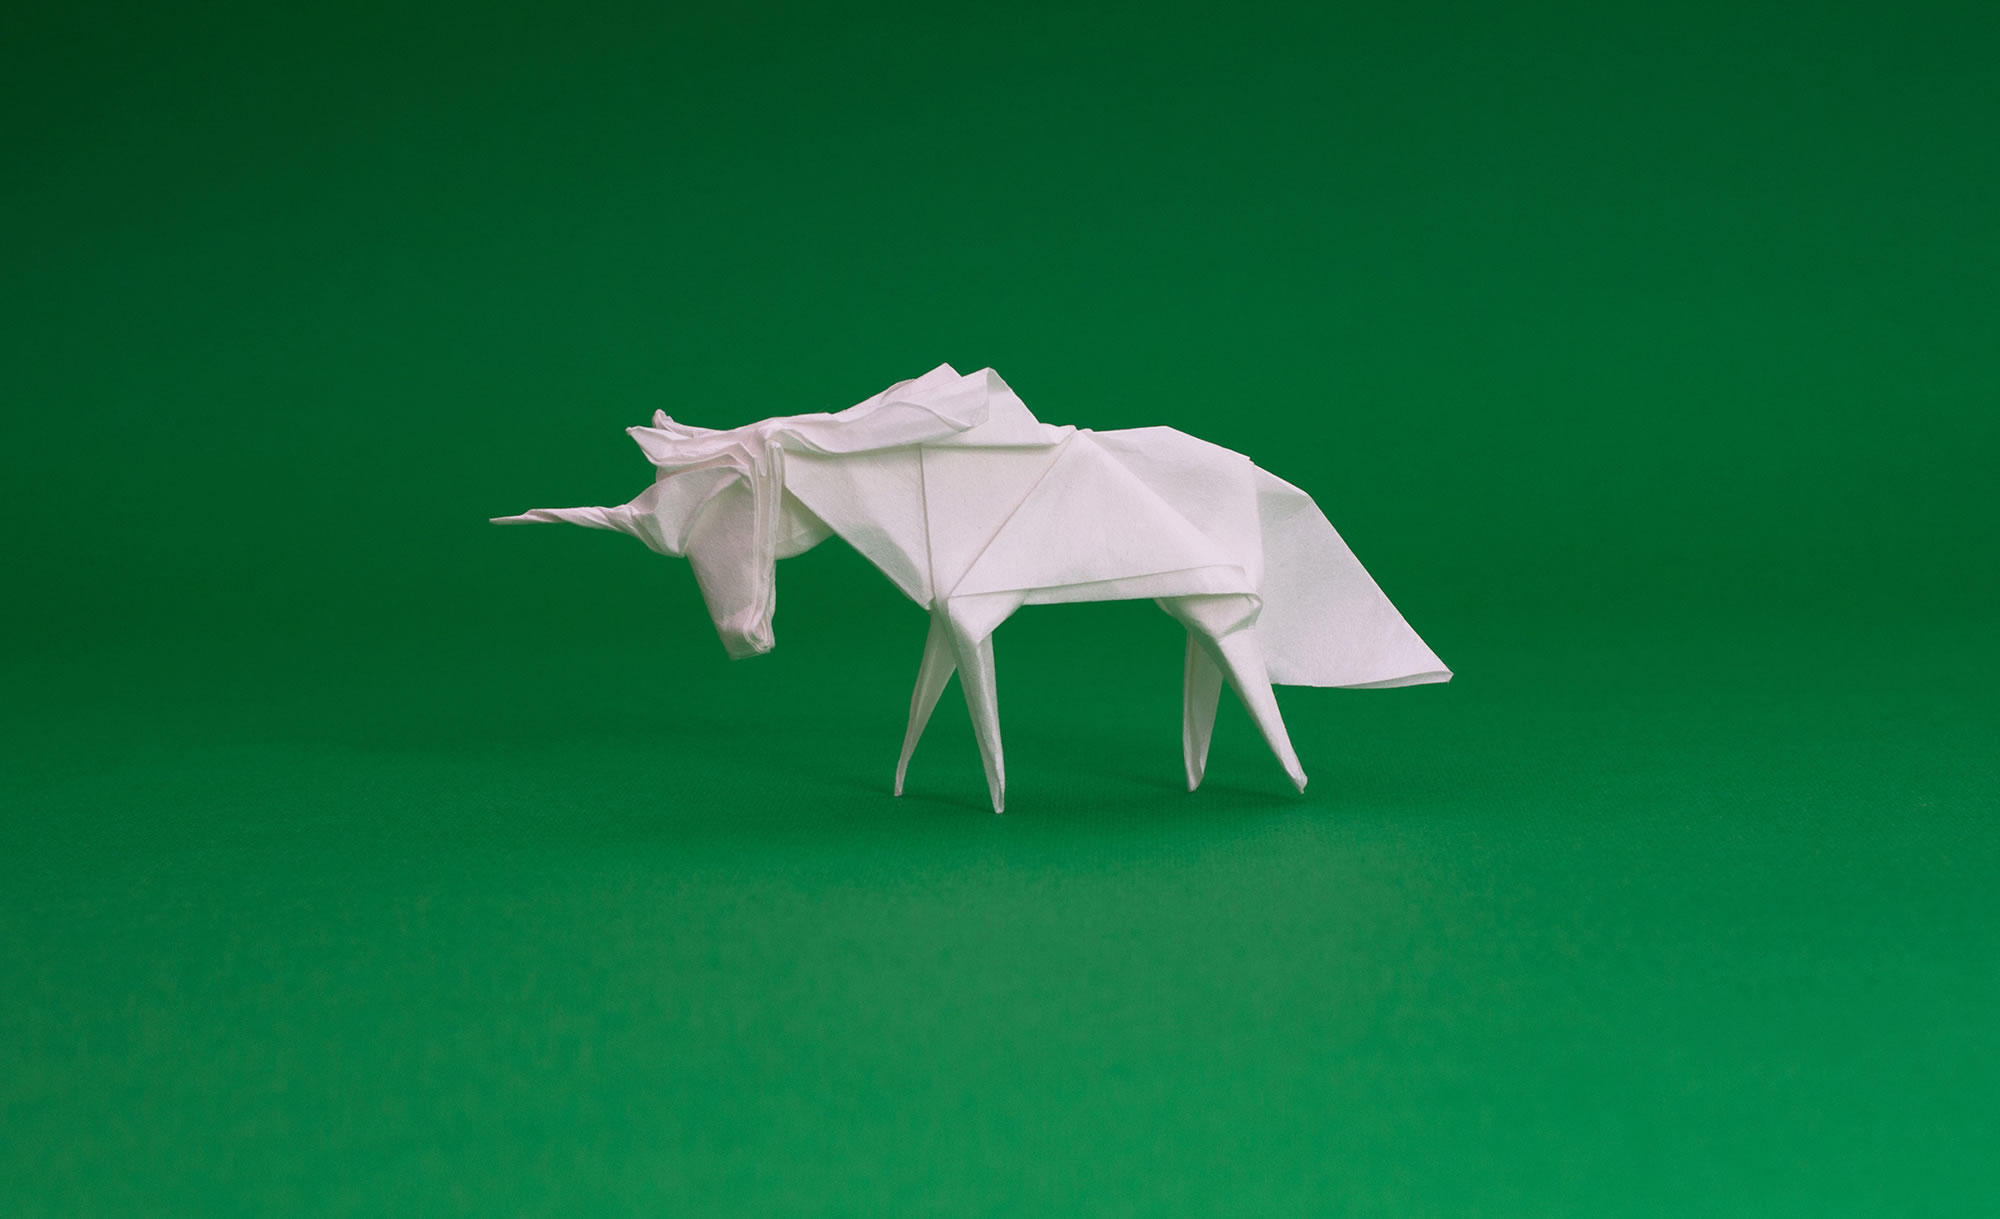 The Elegantly Photographed Origami Animals of Ross Symons